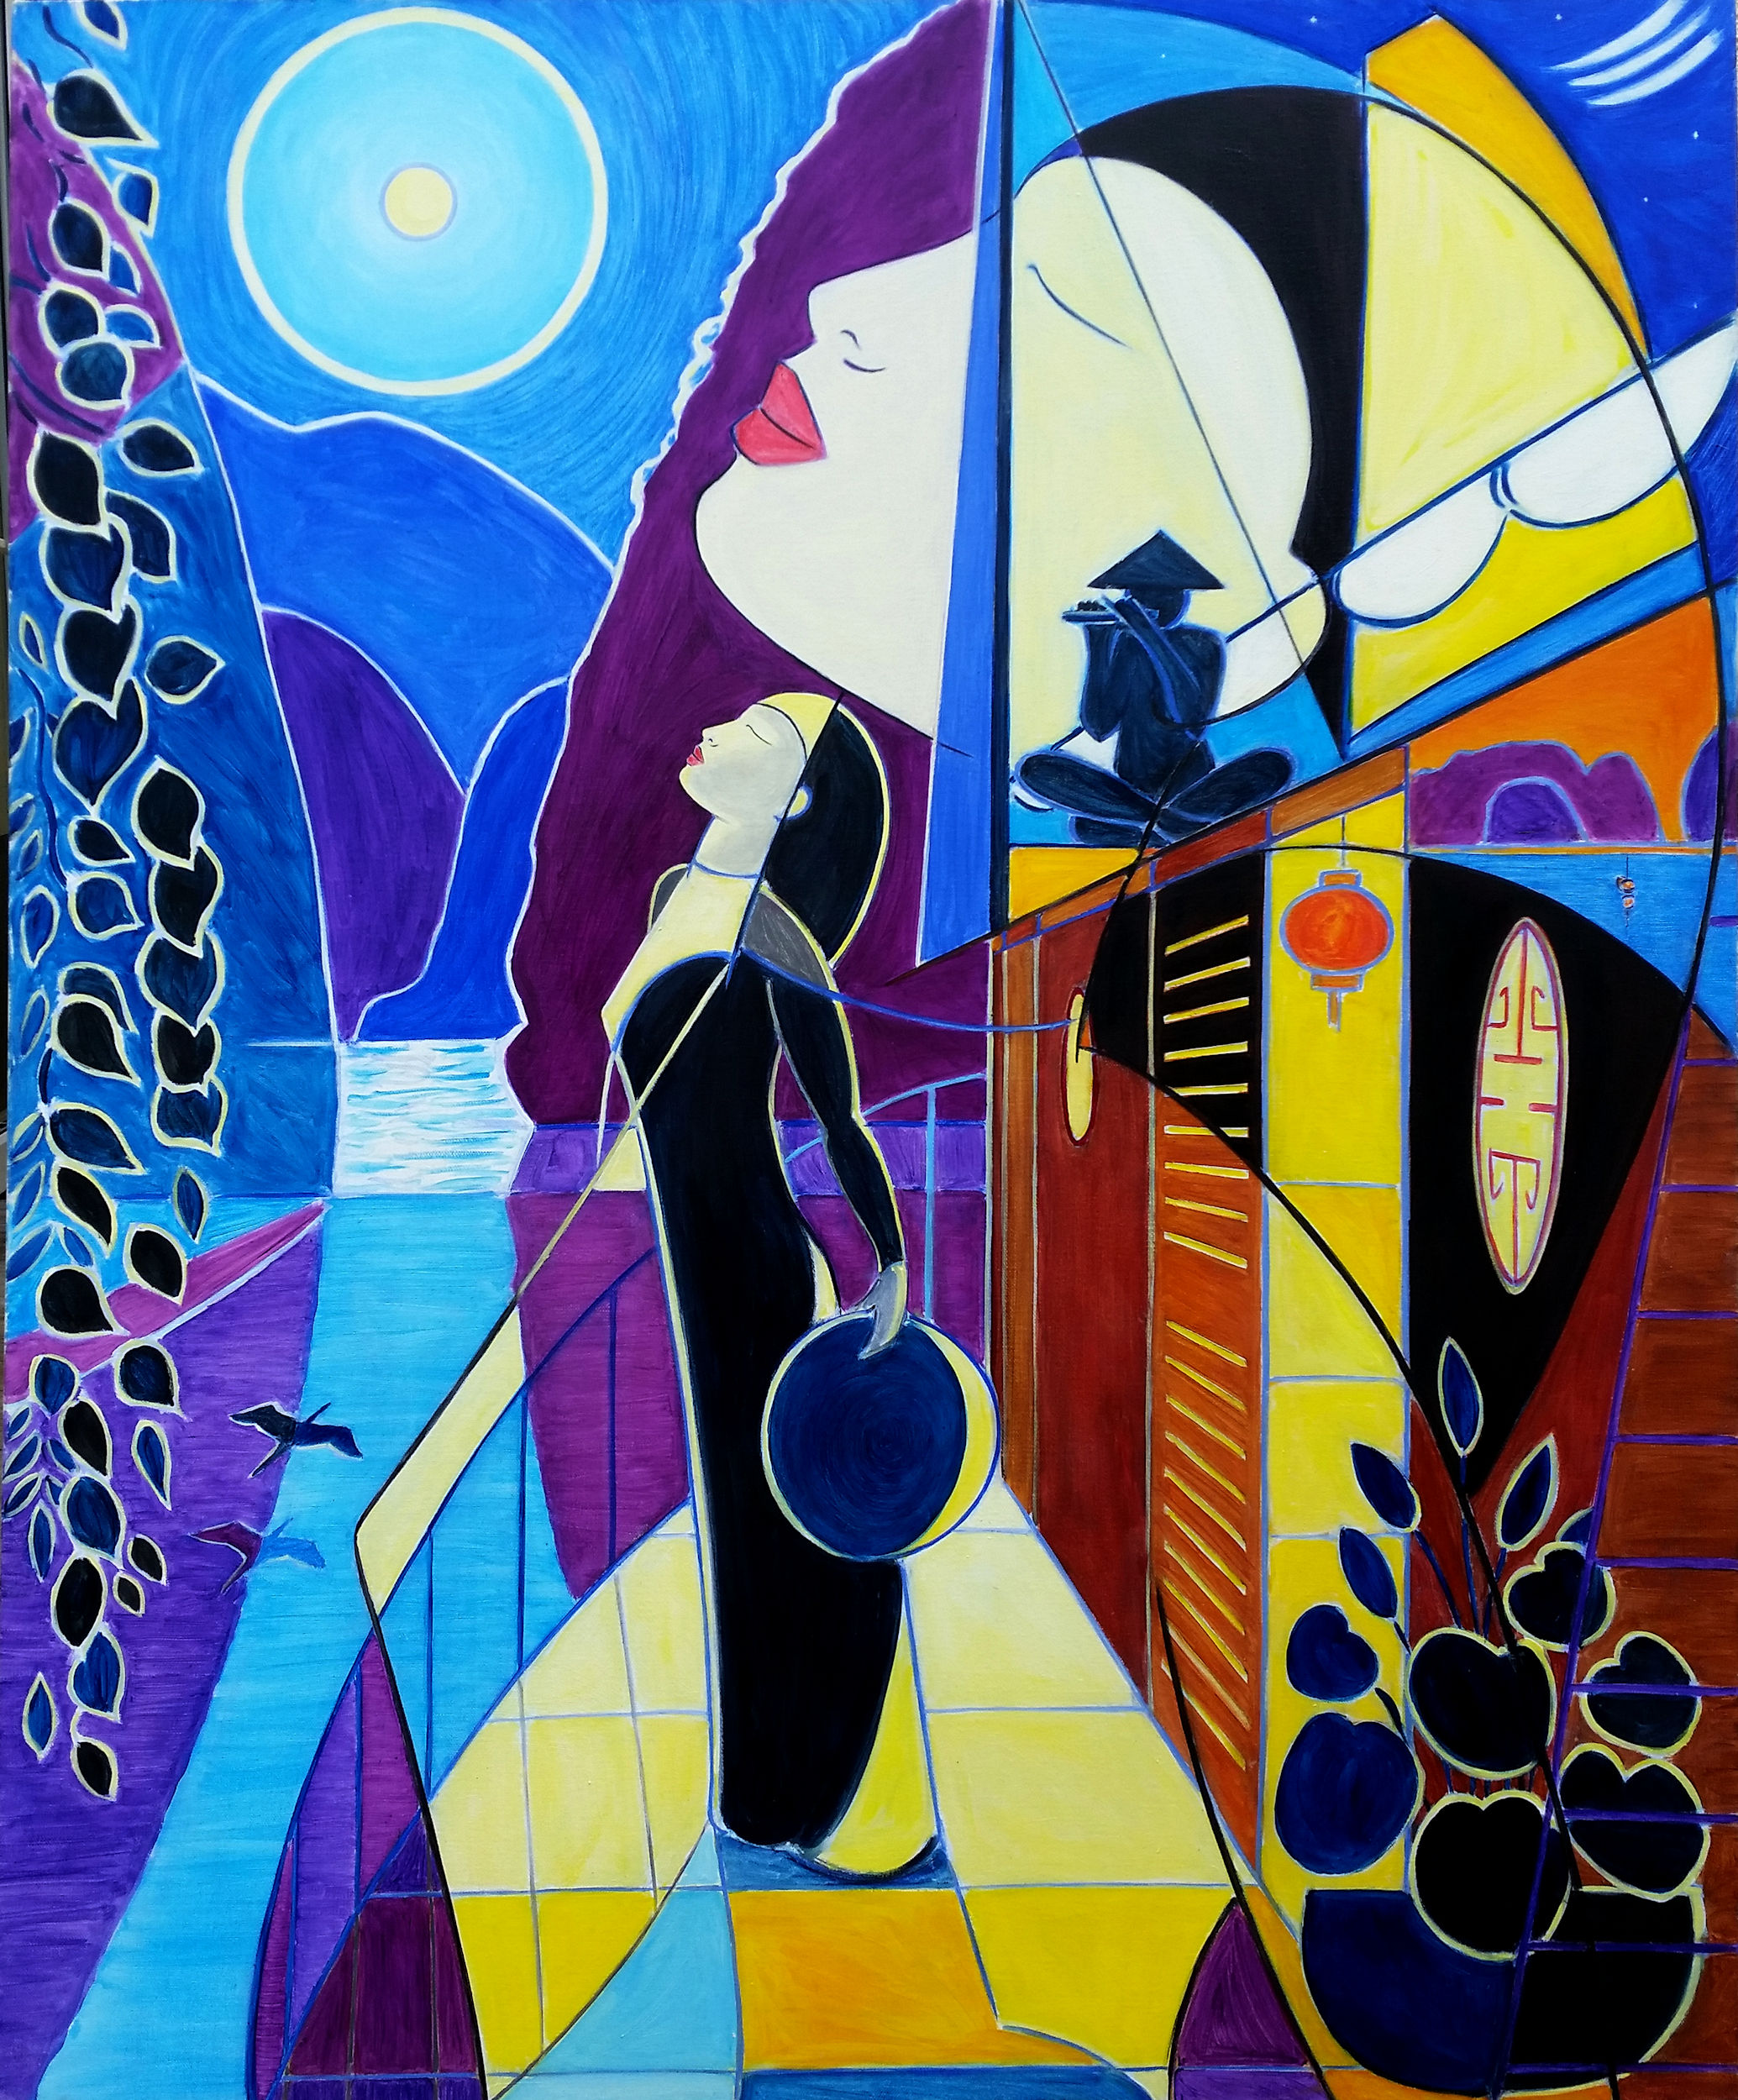 Moonlight Dreams - Oil on Canvas, 100 x 120cm